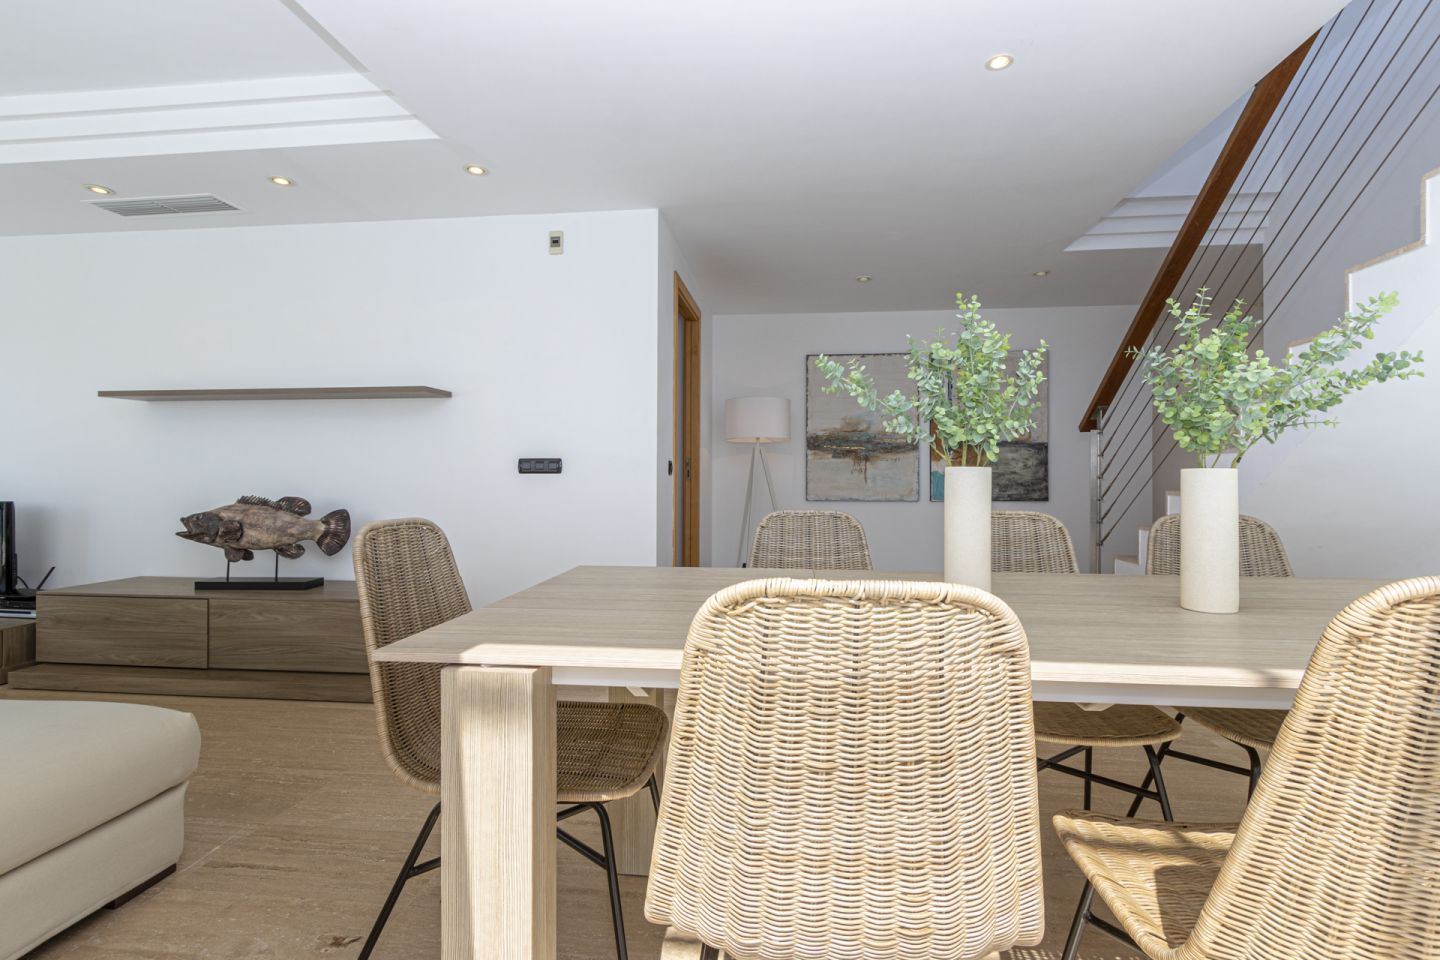 4 Bed Penthouse for sale in PUERTO POLLENSA 6